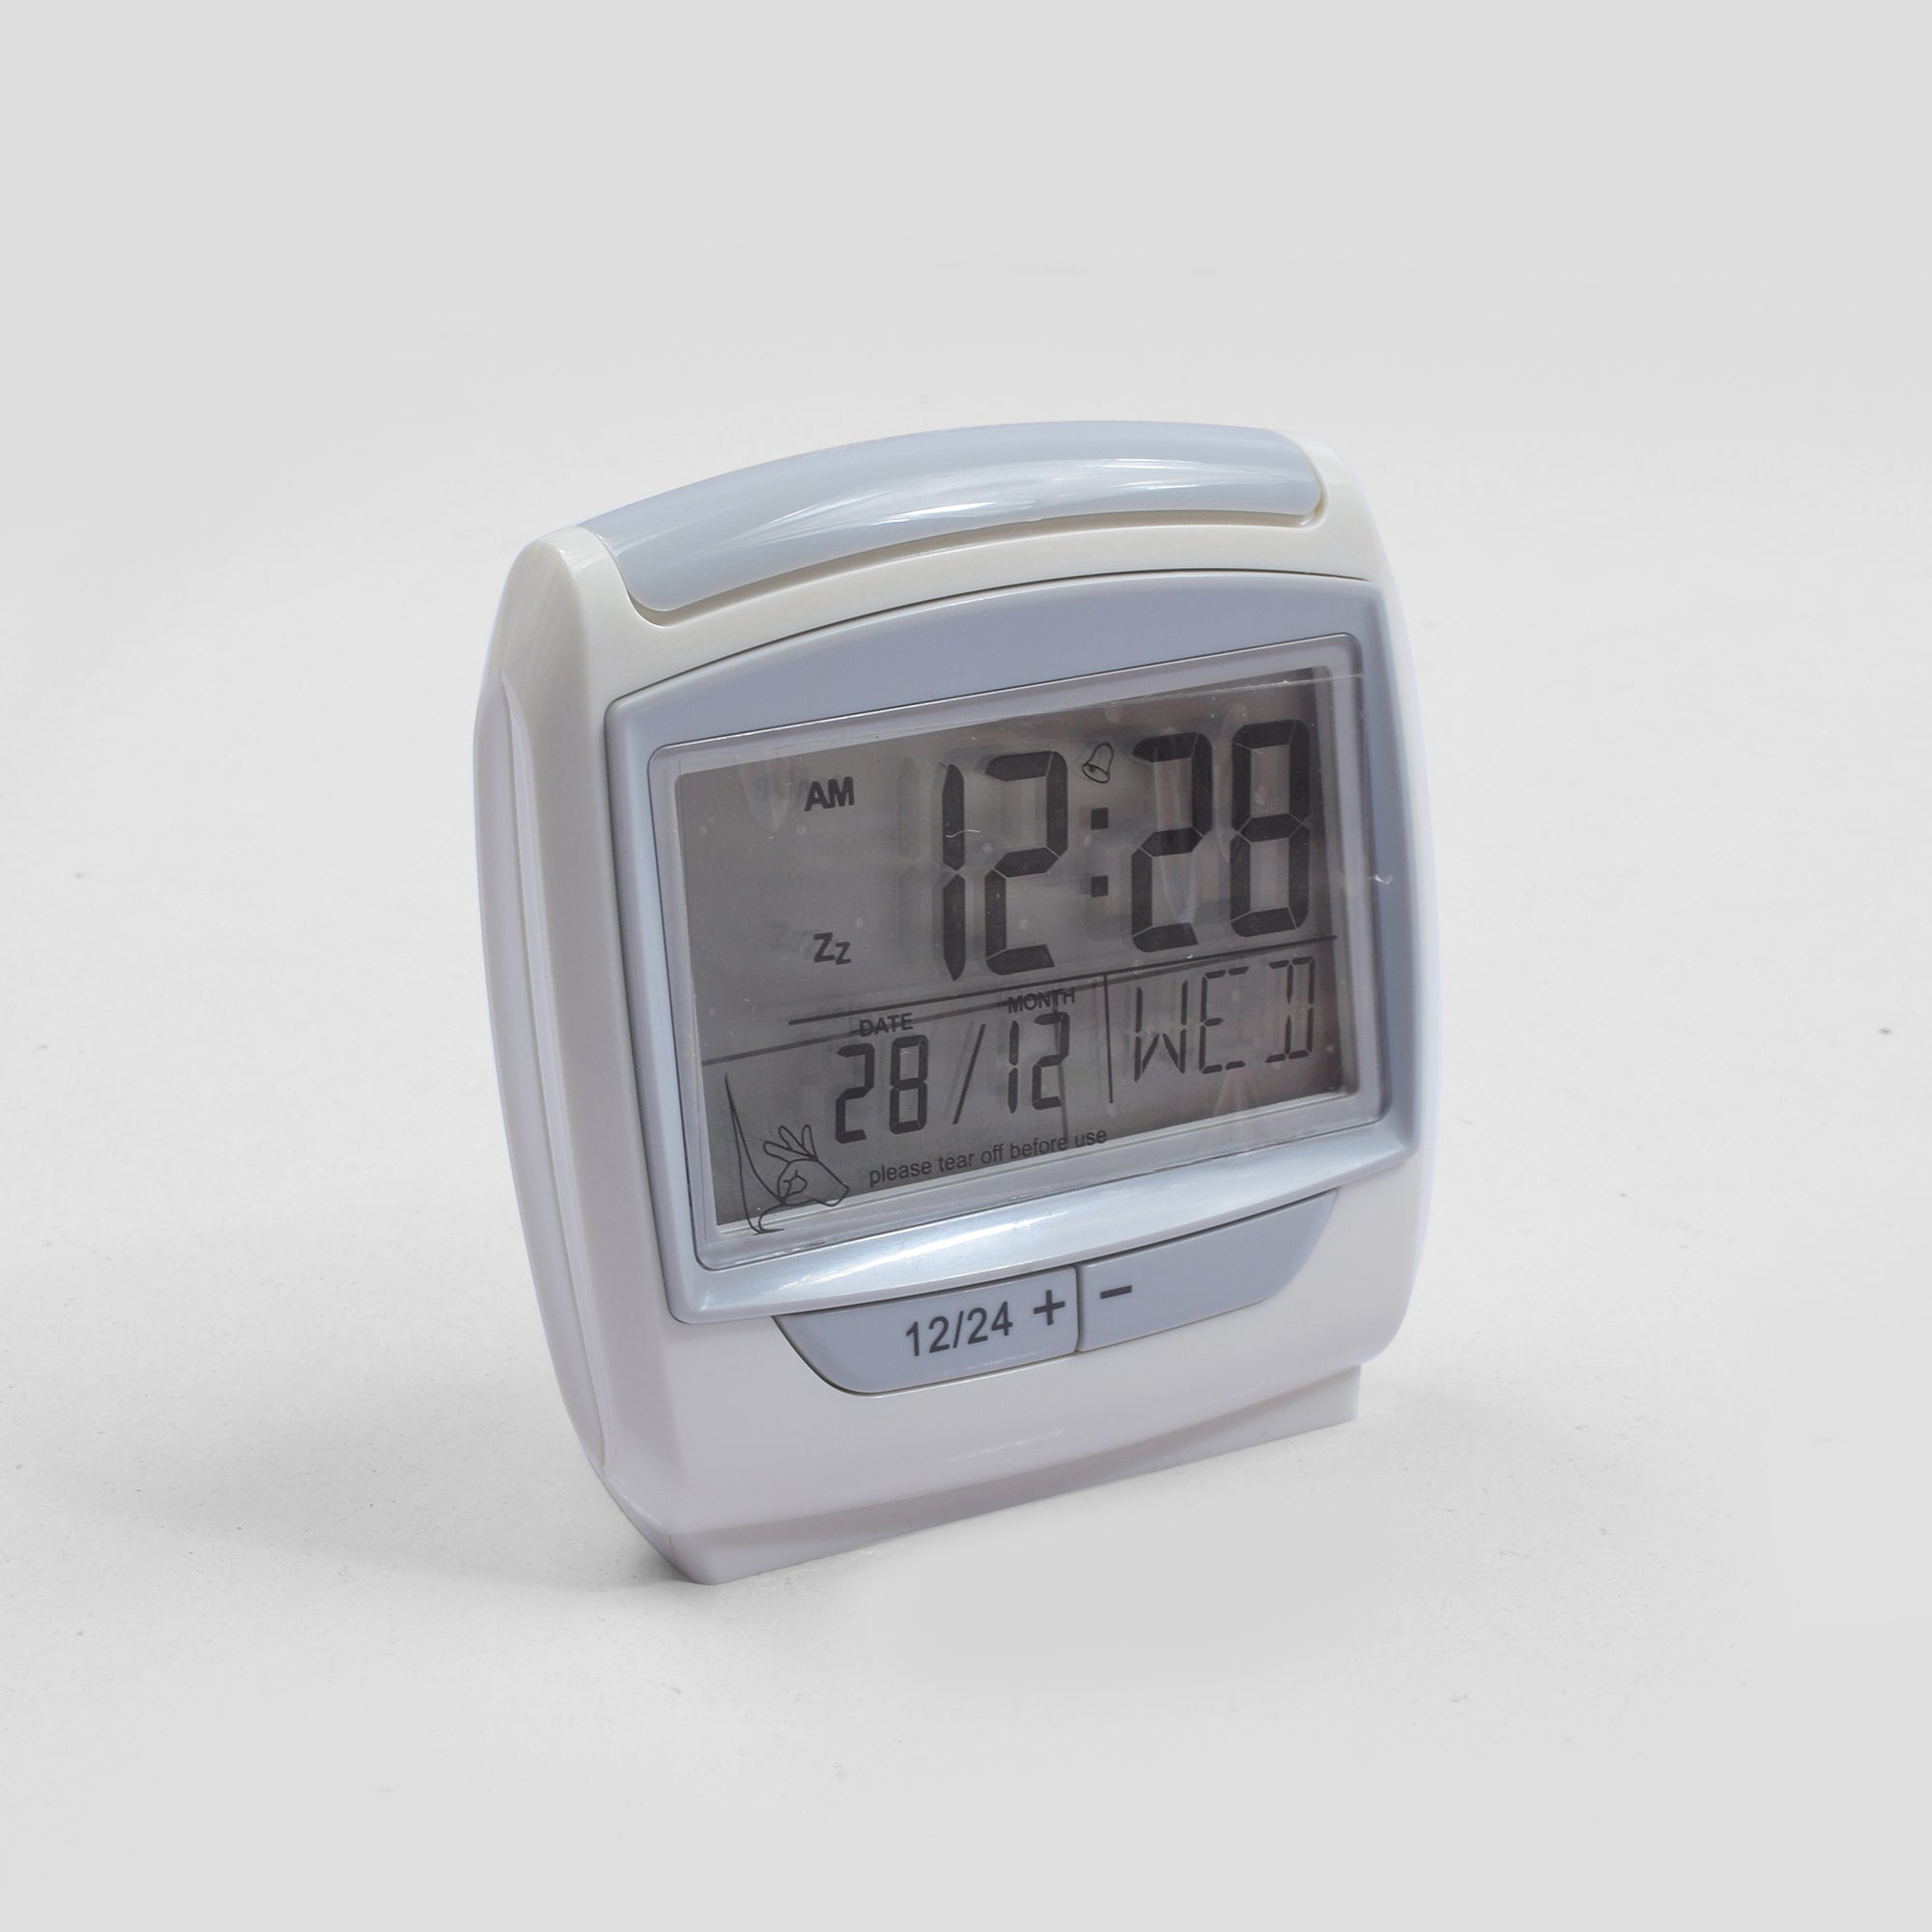 Karce Digital Alarm Clock-NA11450